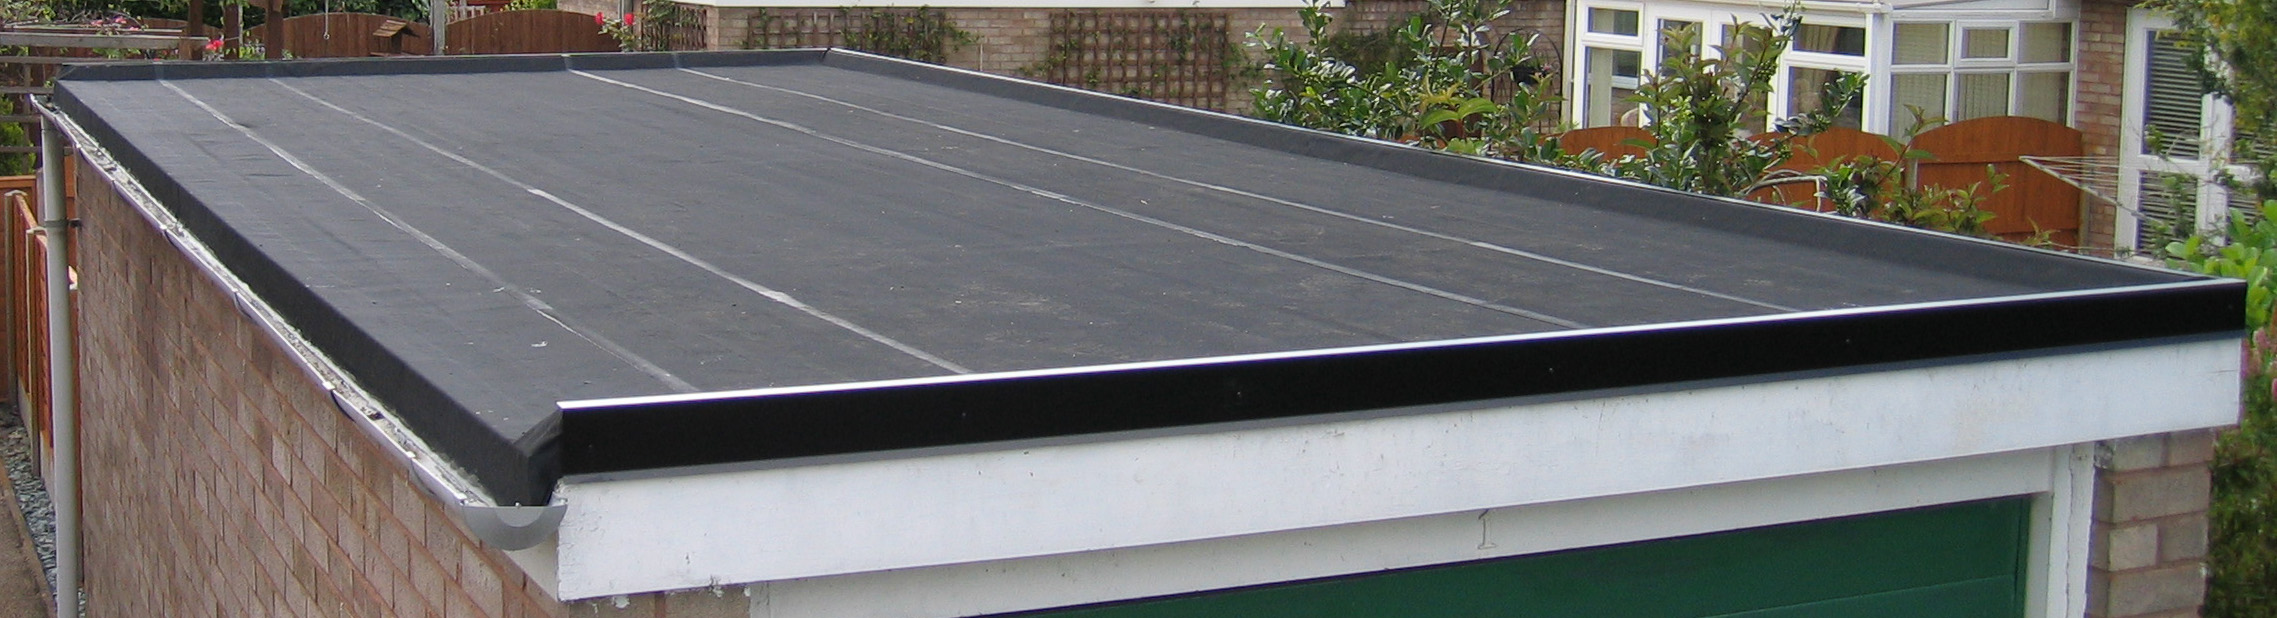 A r sneddon sons rubber roofing solutions - Advantages using epdm roofing membrane ...